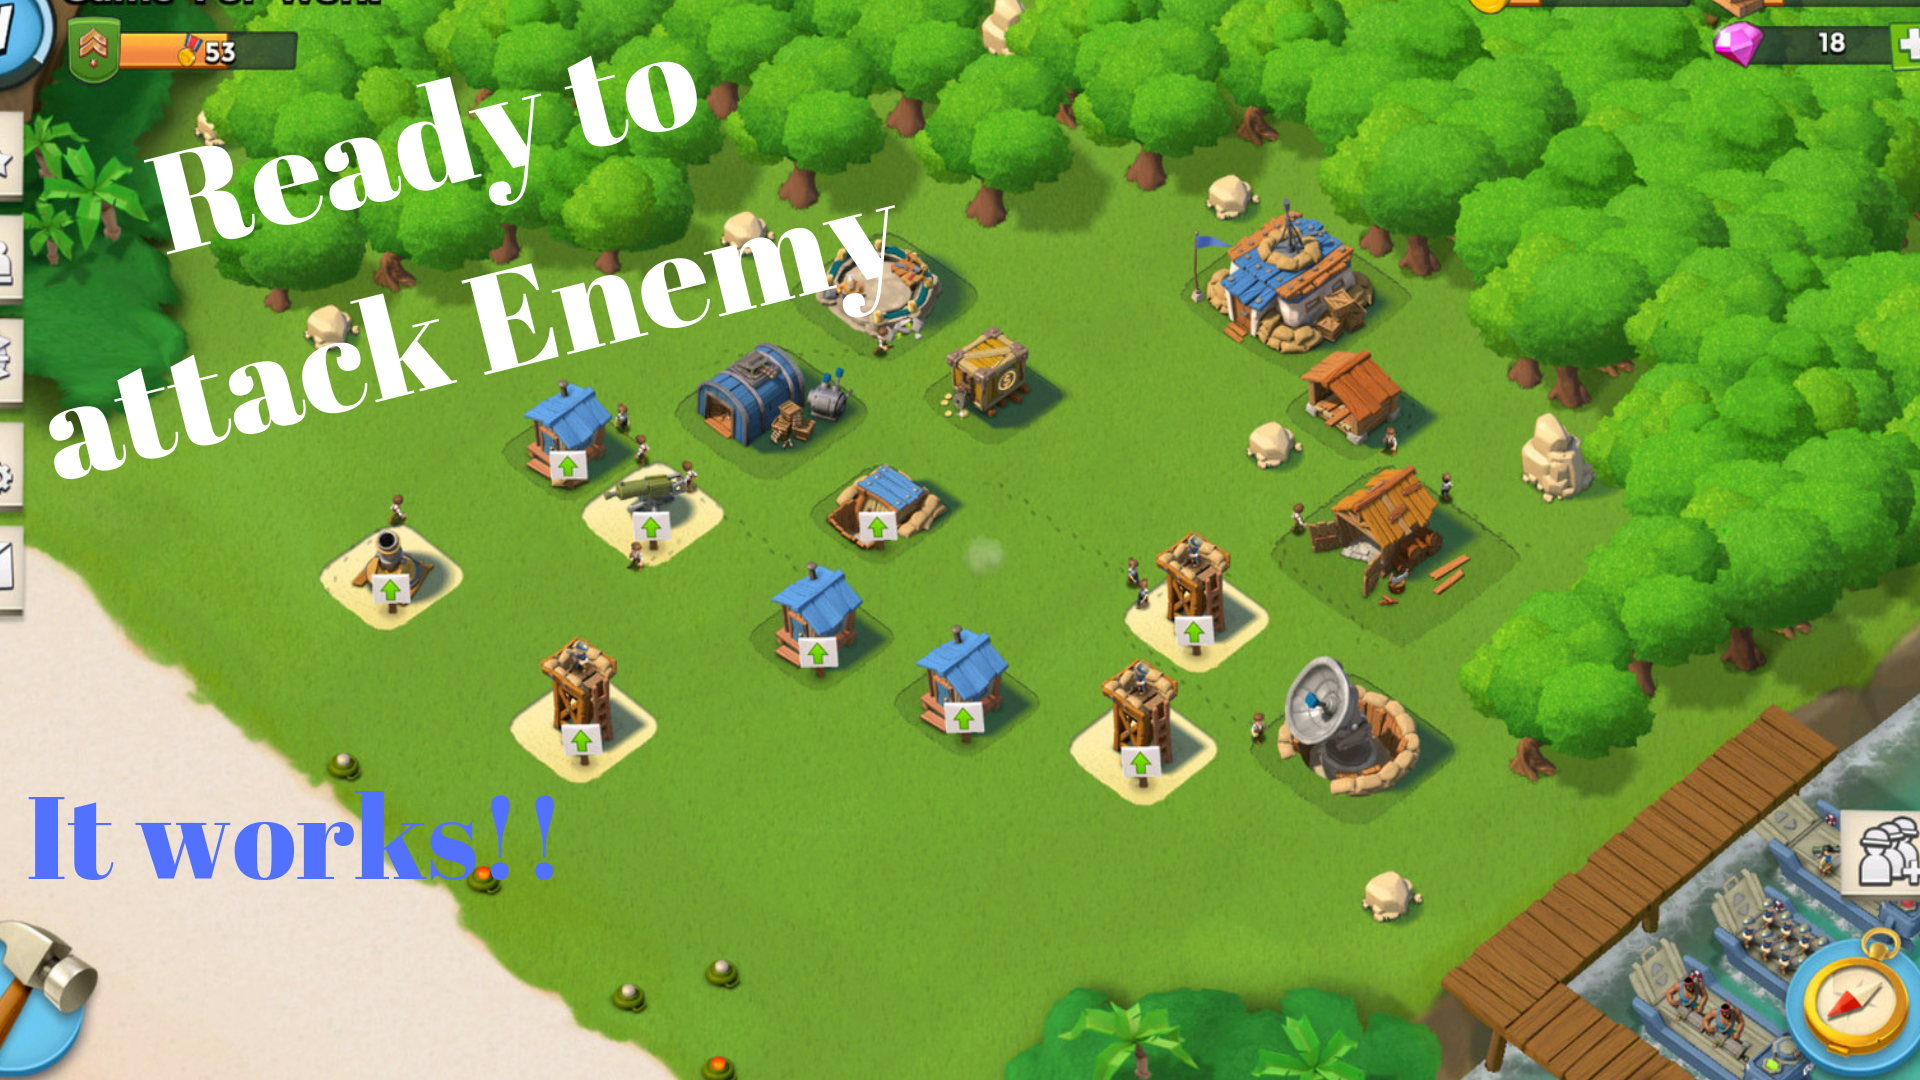 download and play Boom Beach for PC (Windows)